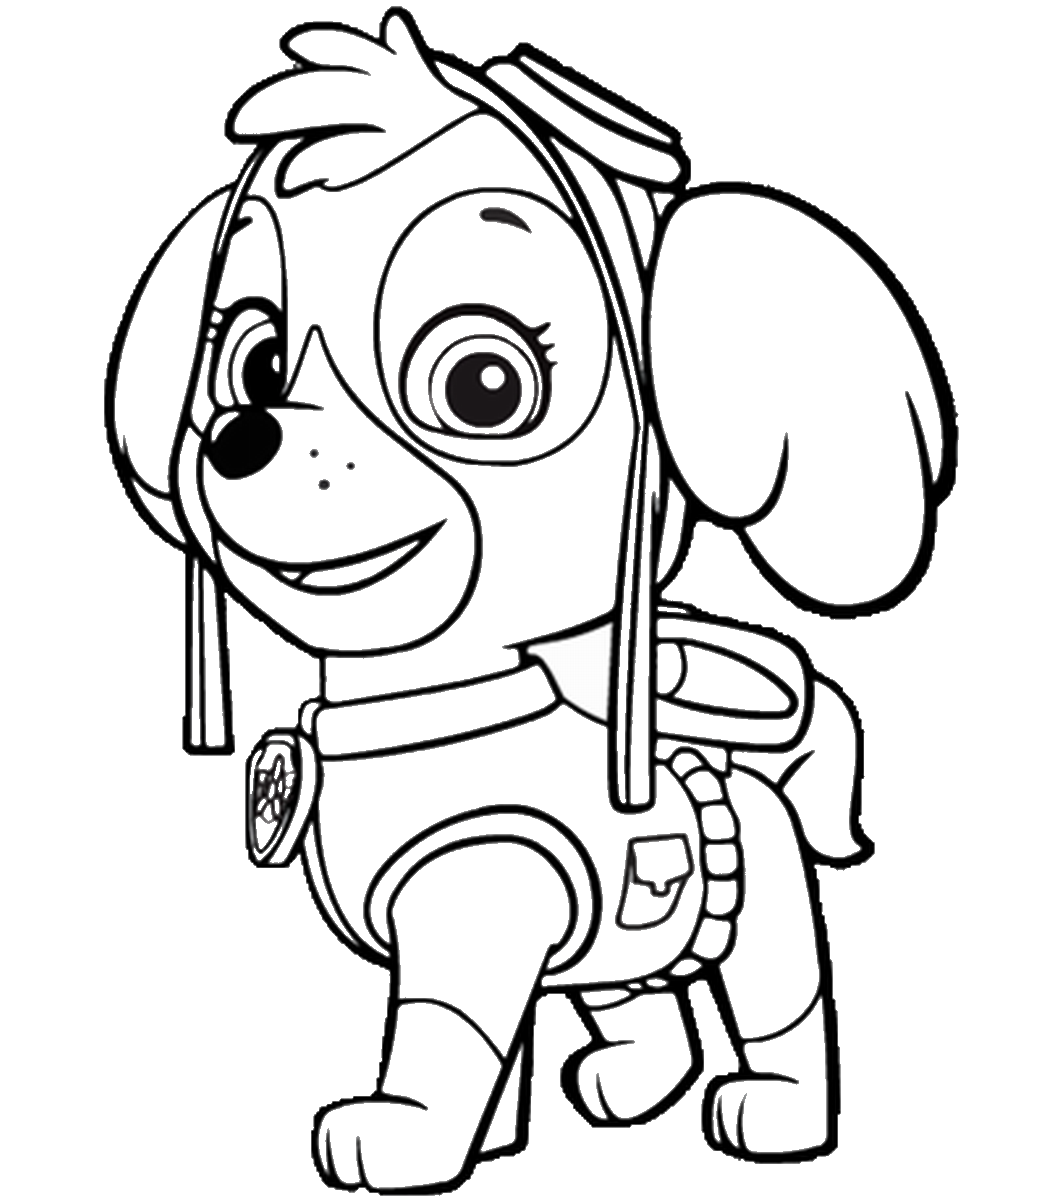 coloring book paw patrol by chonsoftdev for android paw patrol coloring for kids this is a wonderful coloring game for kids - Paw Patrol Coloring Book